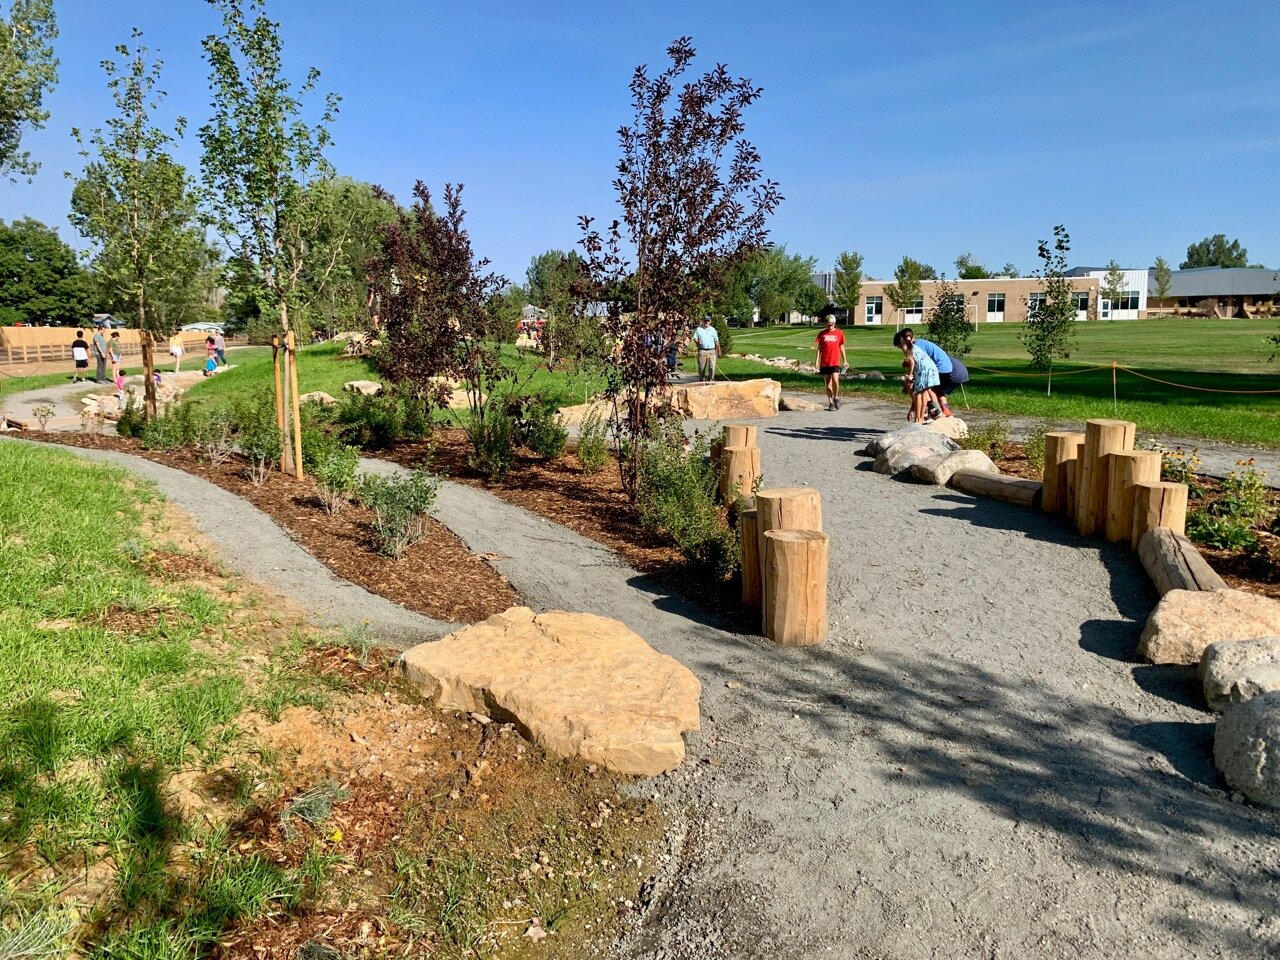 Paths weave through this nature play park and its variety of materials